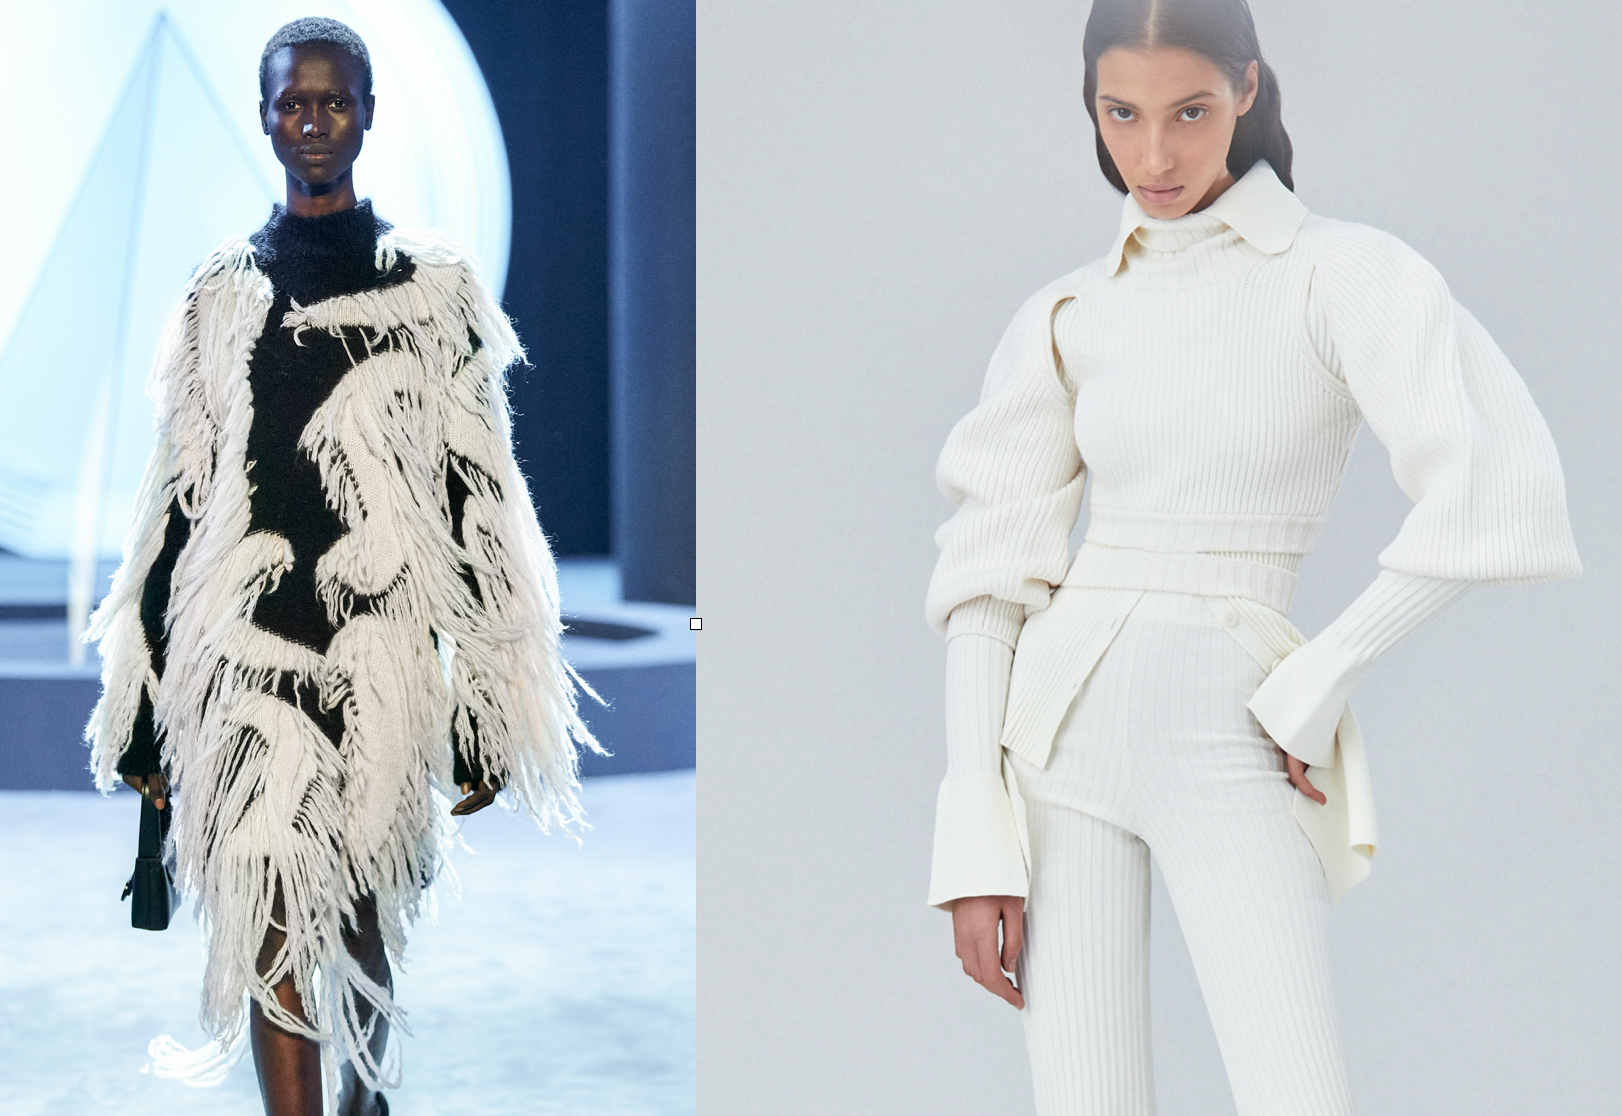 Looks from Salvatore Ferragamo and AndreaAdamo RTW Fall 2021 Collections